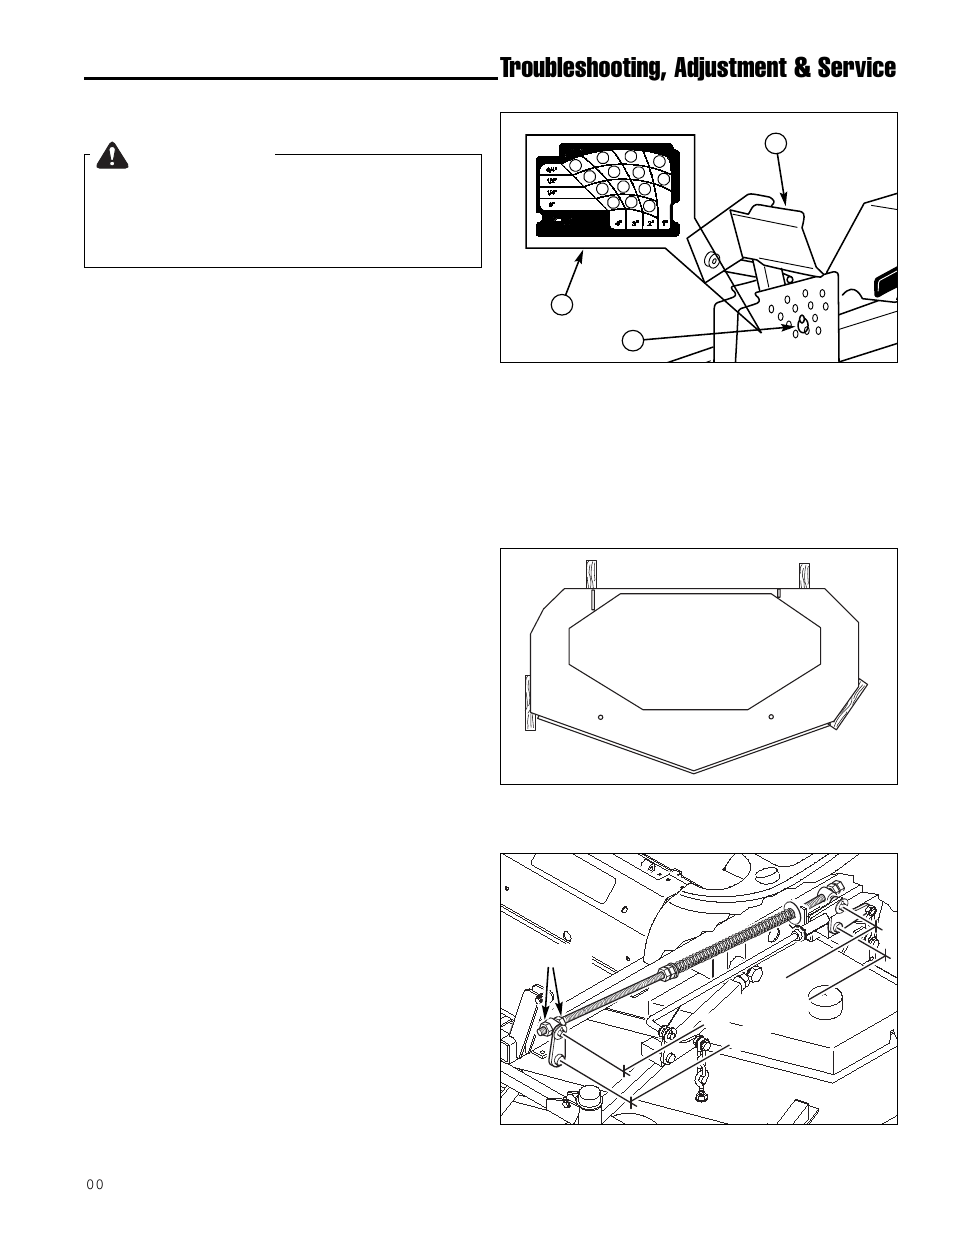 hight resolution of troubleshooting adjustment service warning cutting height adjustment simplicity zt2561f user manual page 31 44